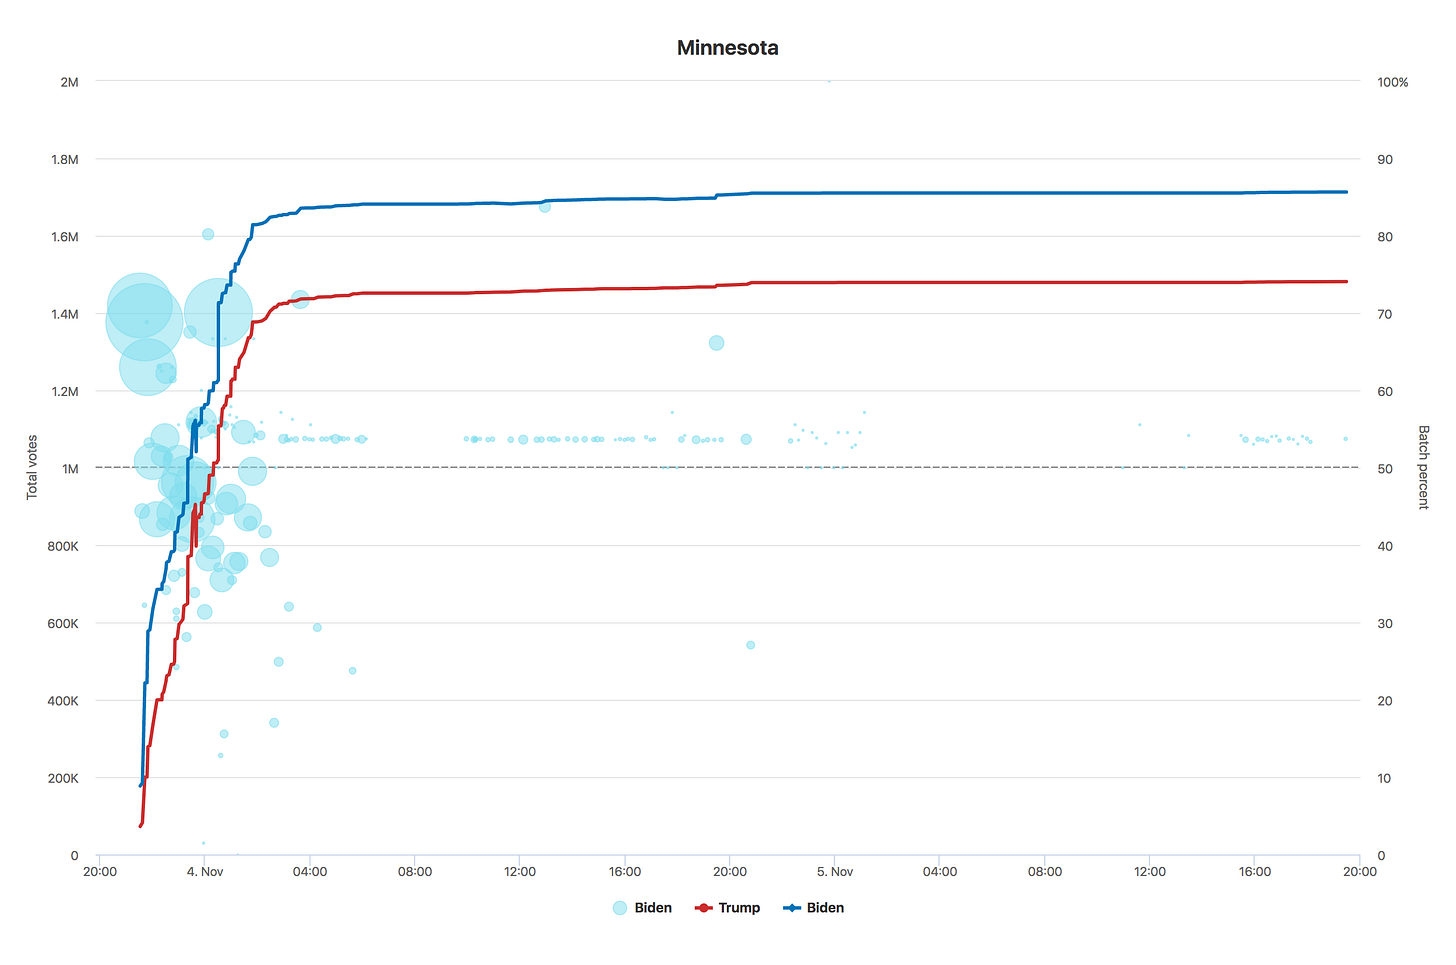 Chart of Minnesota voting data over time